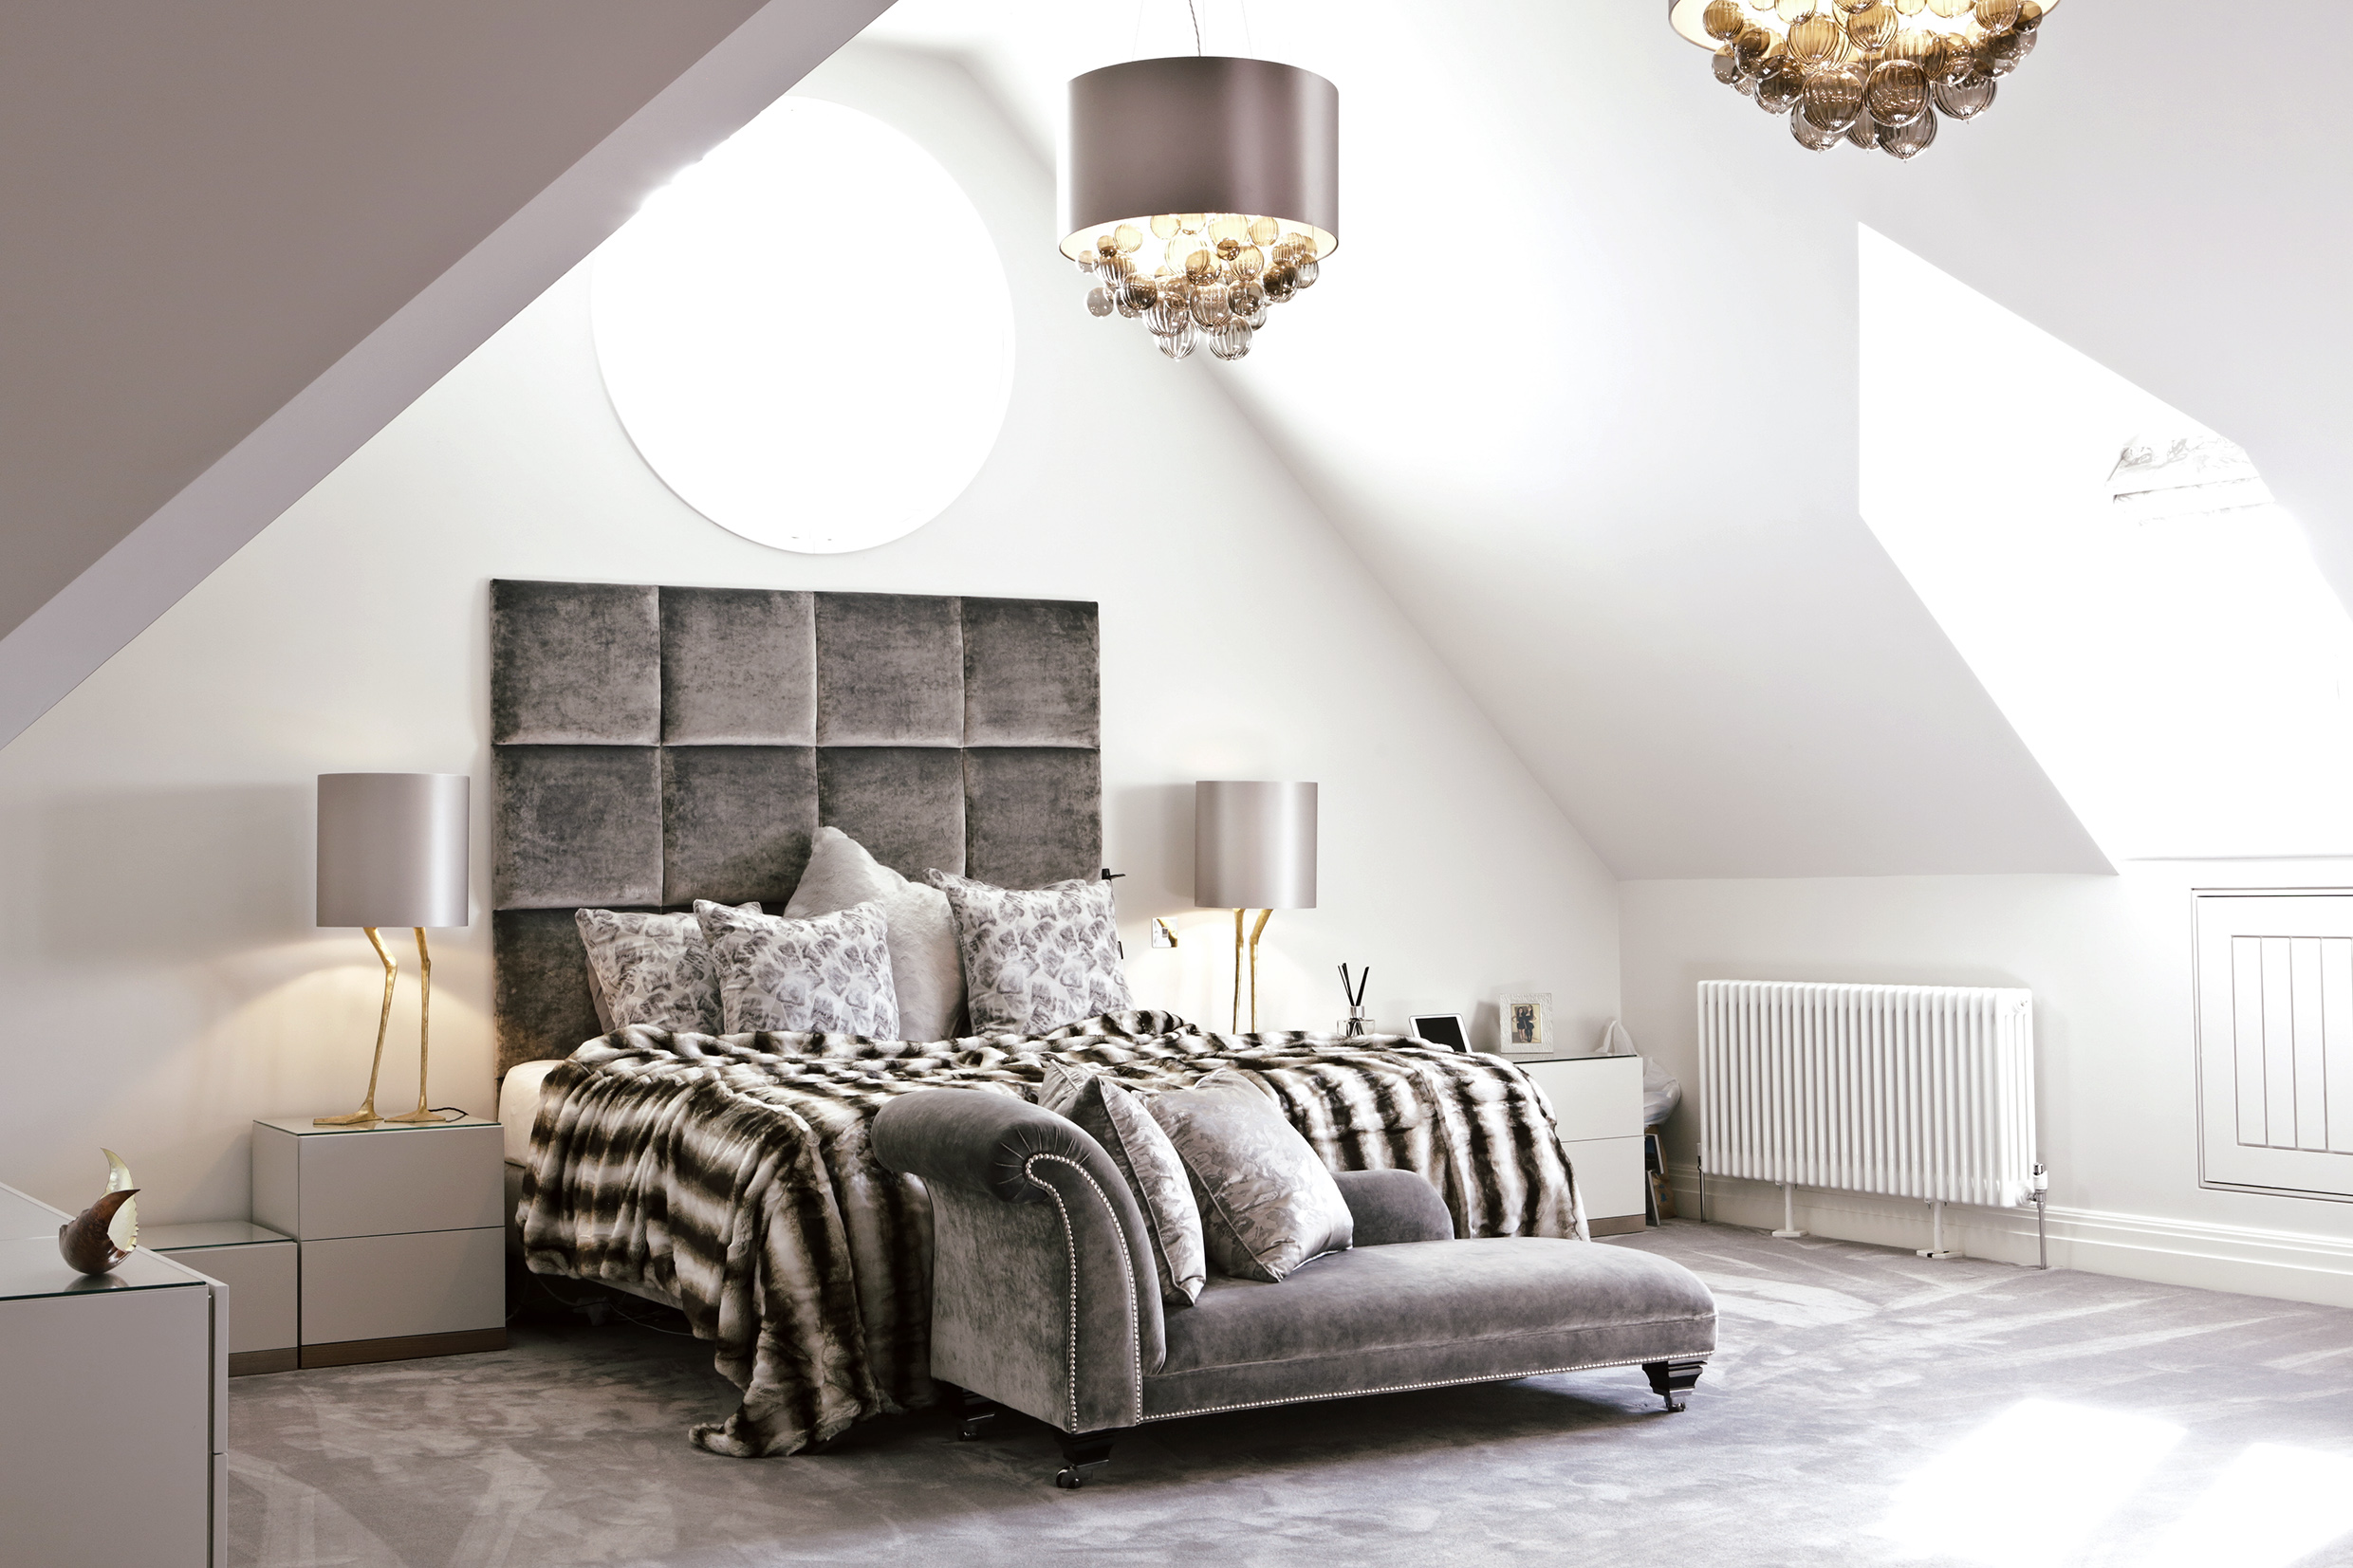 Peter Staunton Interior Design Flint Hall Bedroom Leamington Spa Warwickshire